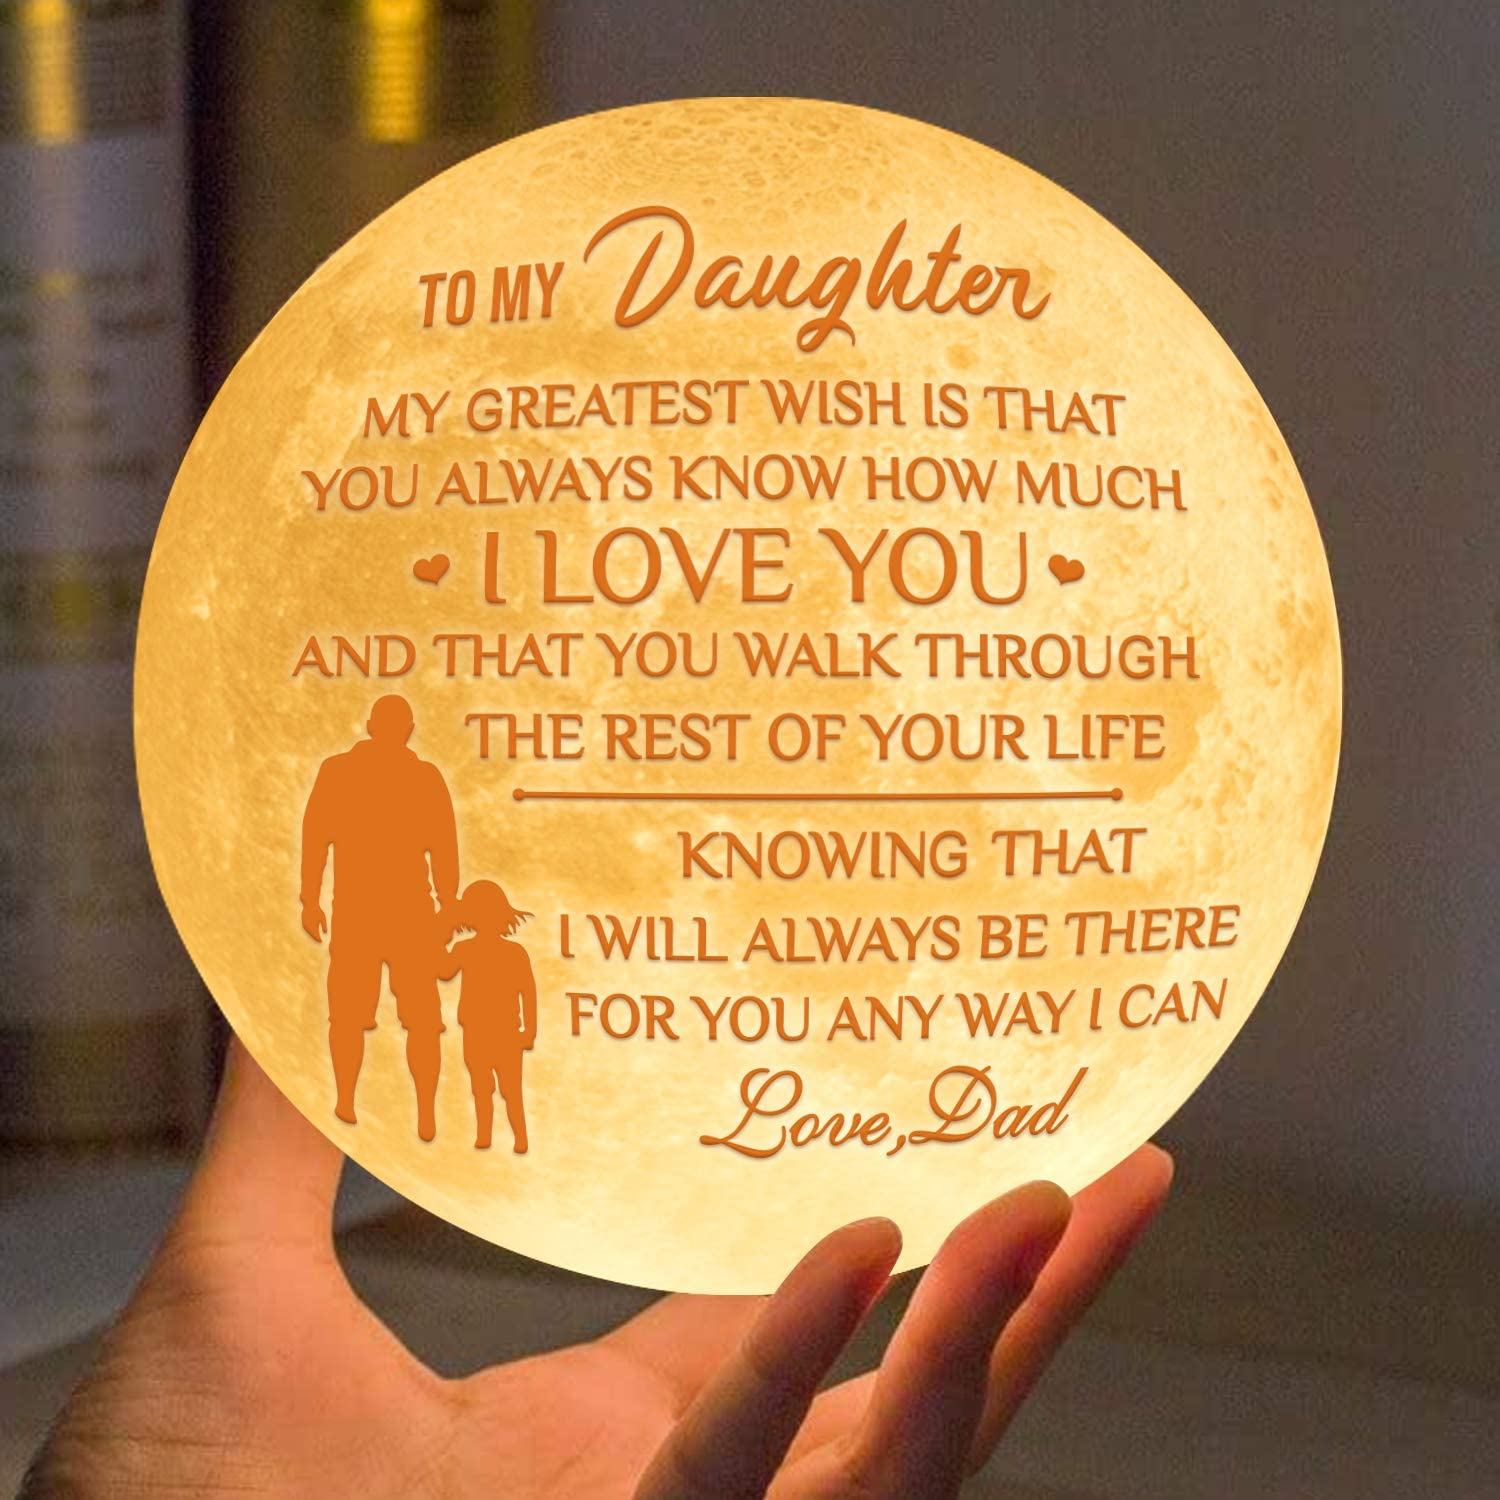 Engraved Moon Lamp Night Light for Daughter - You Always Know How Much I Love You - Moon Light with Remote & Touch Control Brightness - Perfect Birthdays Christmas for Daughter from Dad